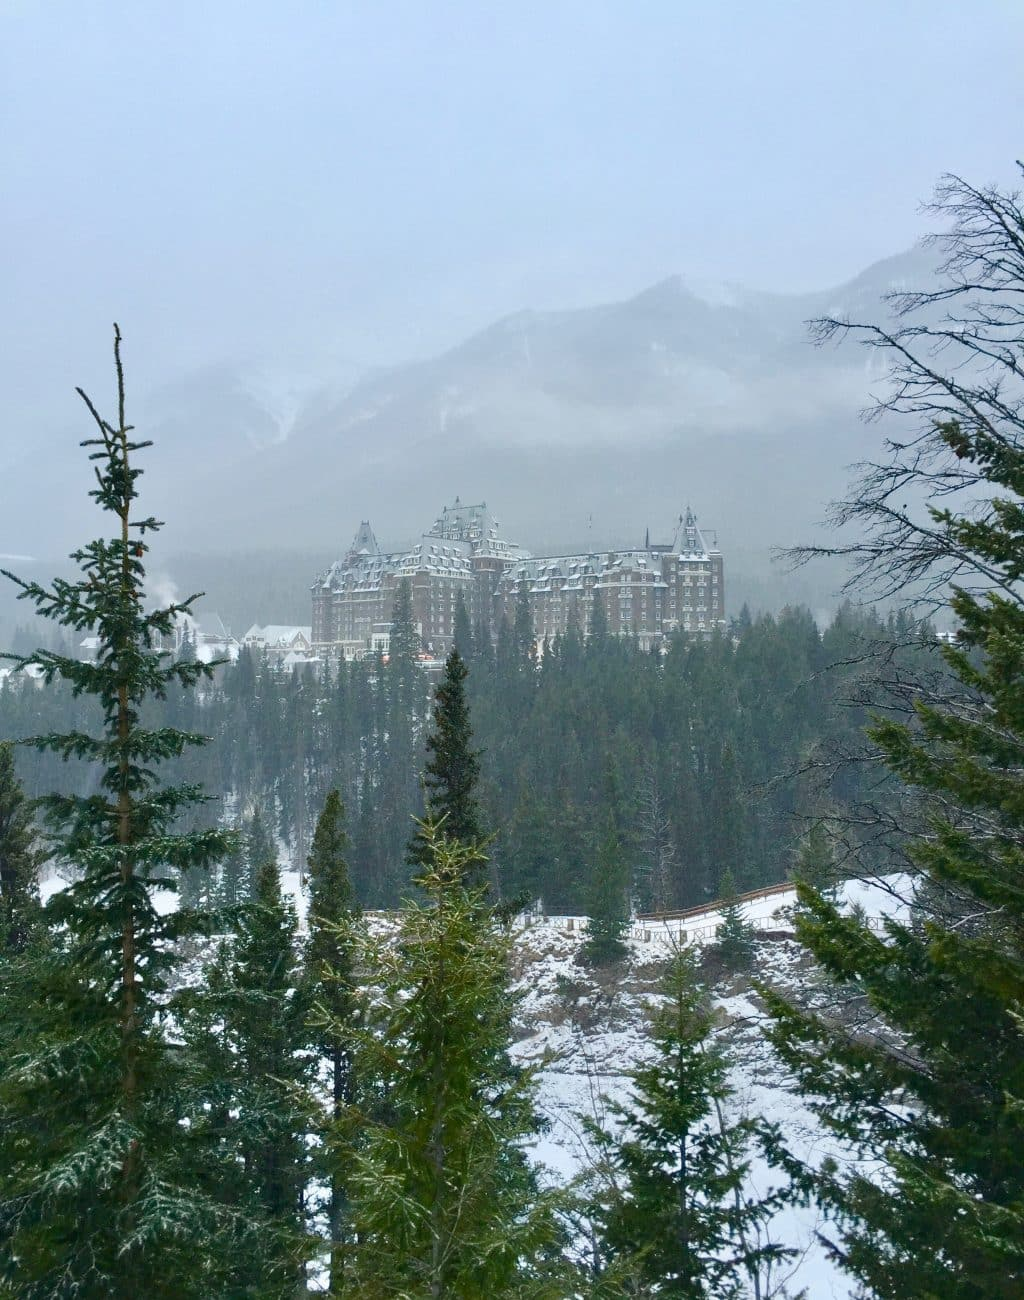 Fairmont Banff Springs in the distance with mountains